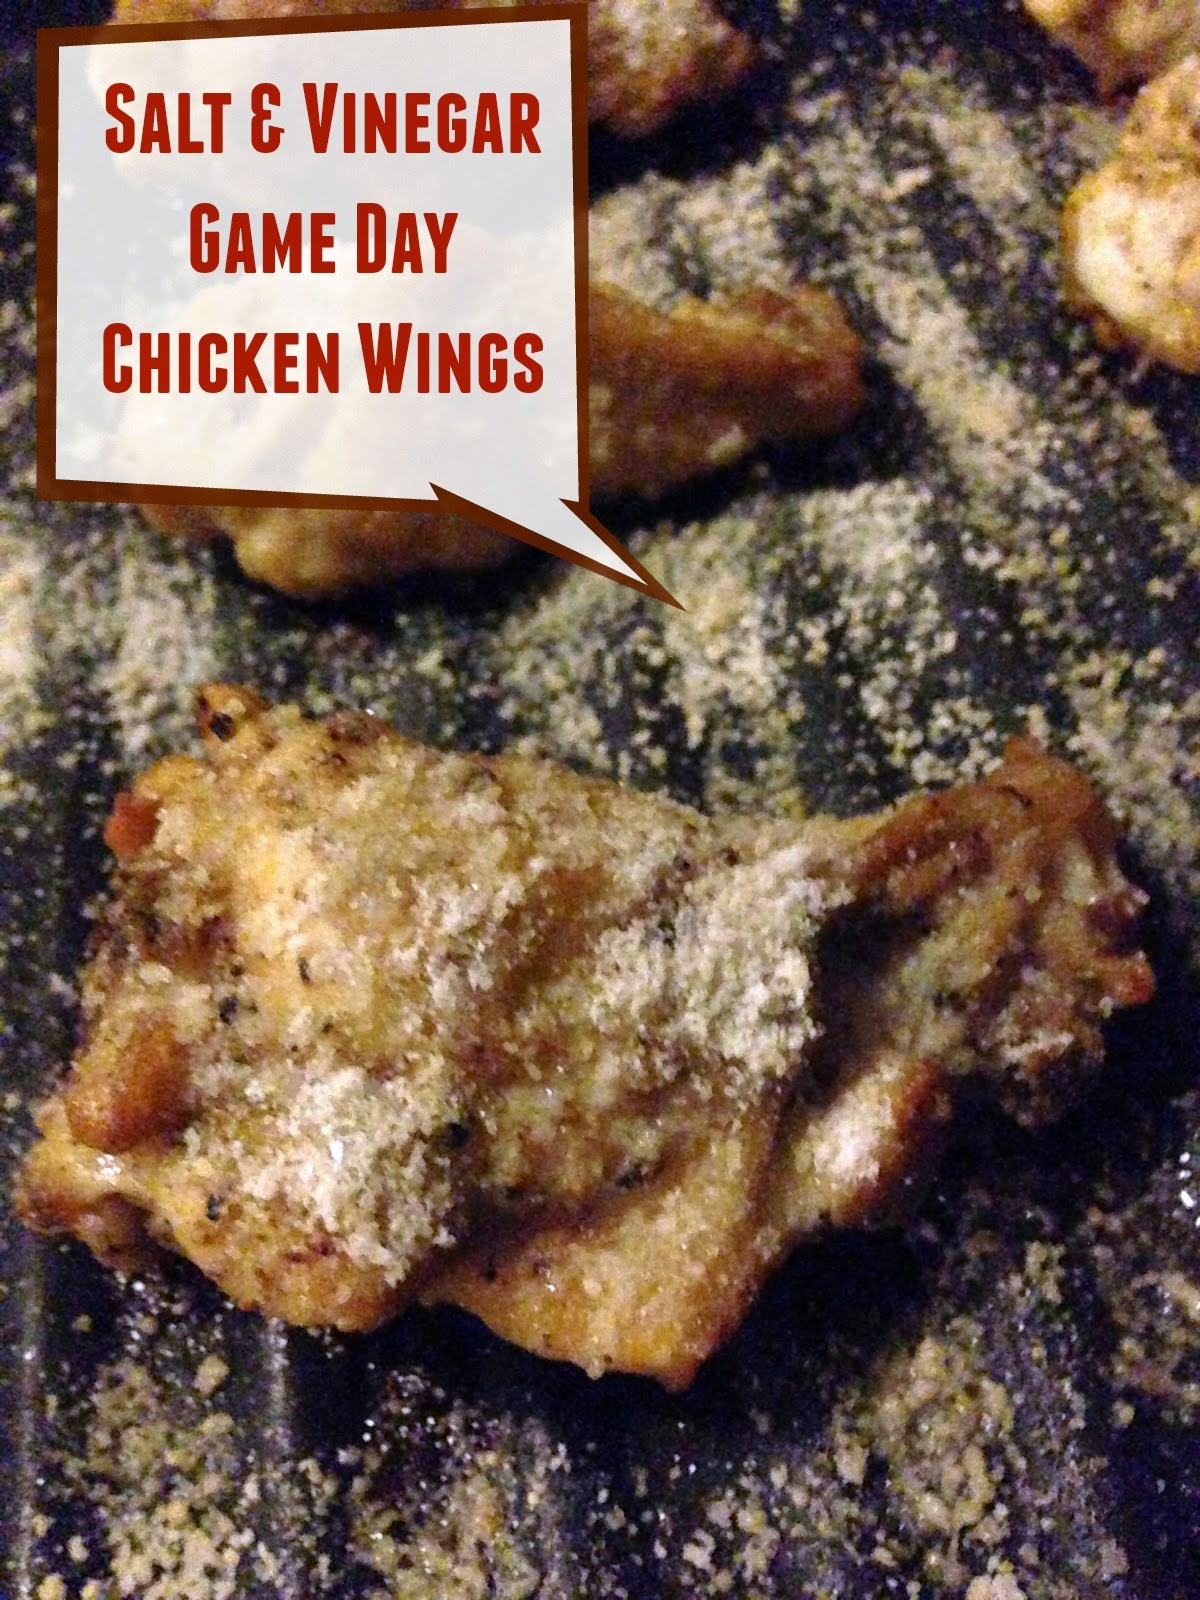 Salt and Vinegar Game Day Chicken Wings